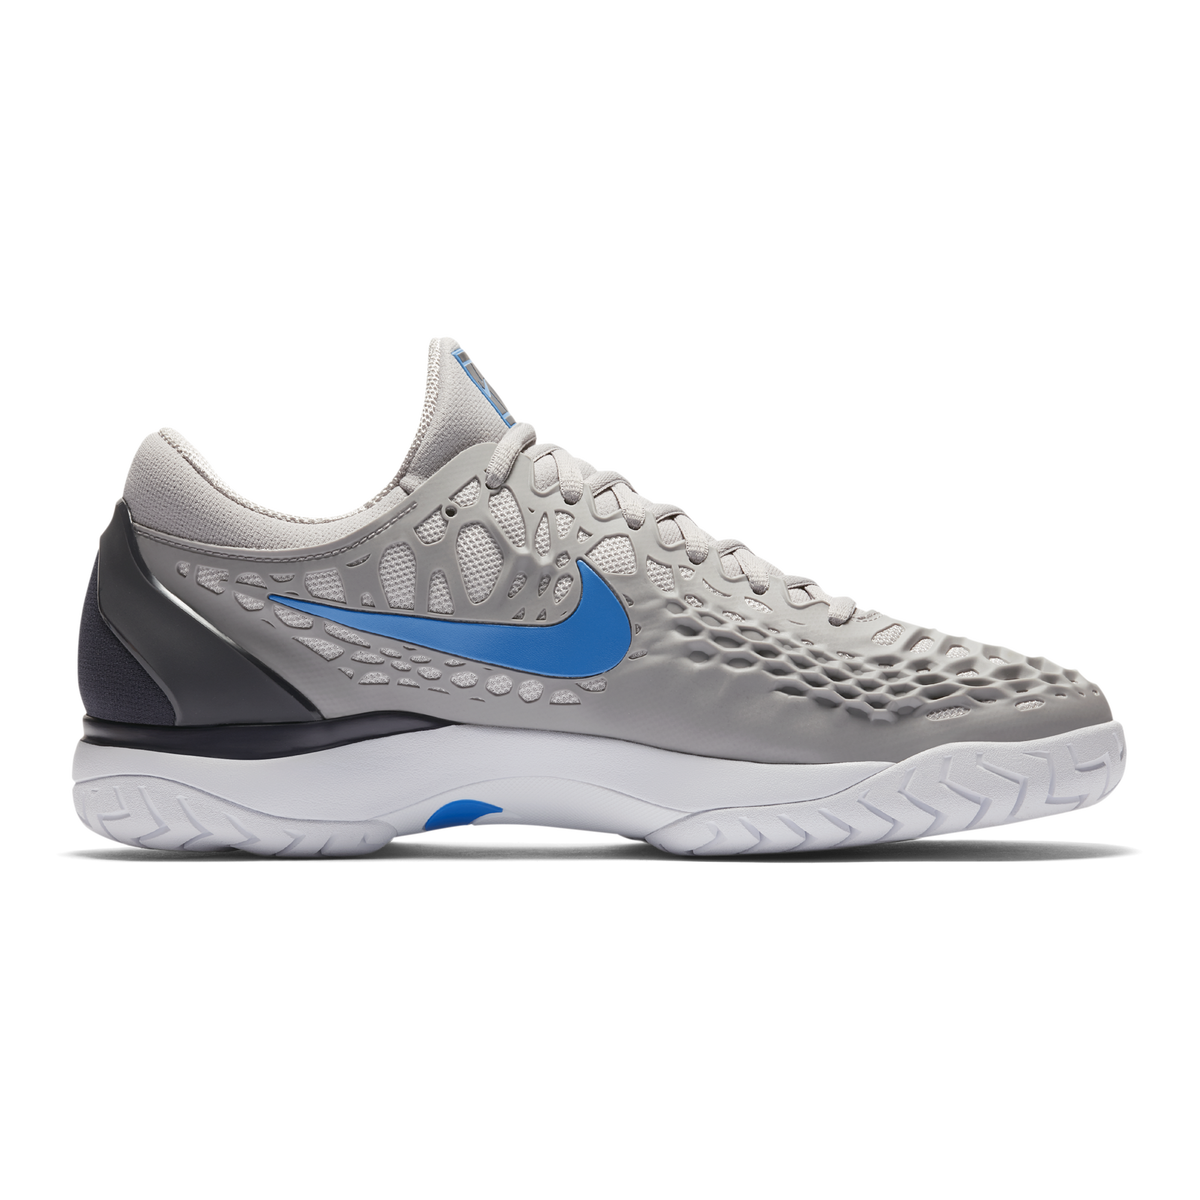 8dea283dc499 Images. Nike Zoom Cage 3 Men  39 s Tennis Shoe - Grey Blue